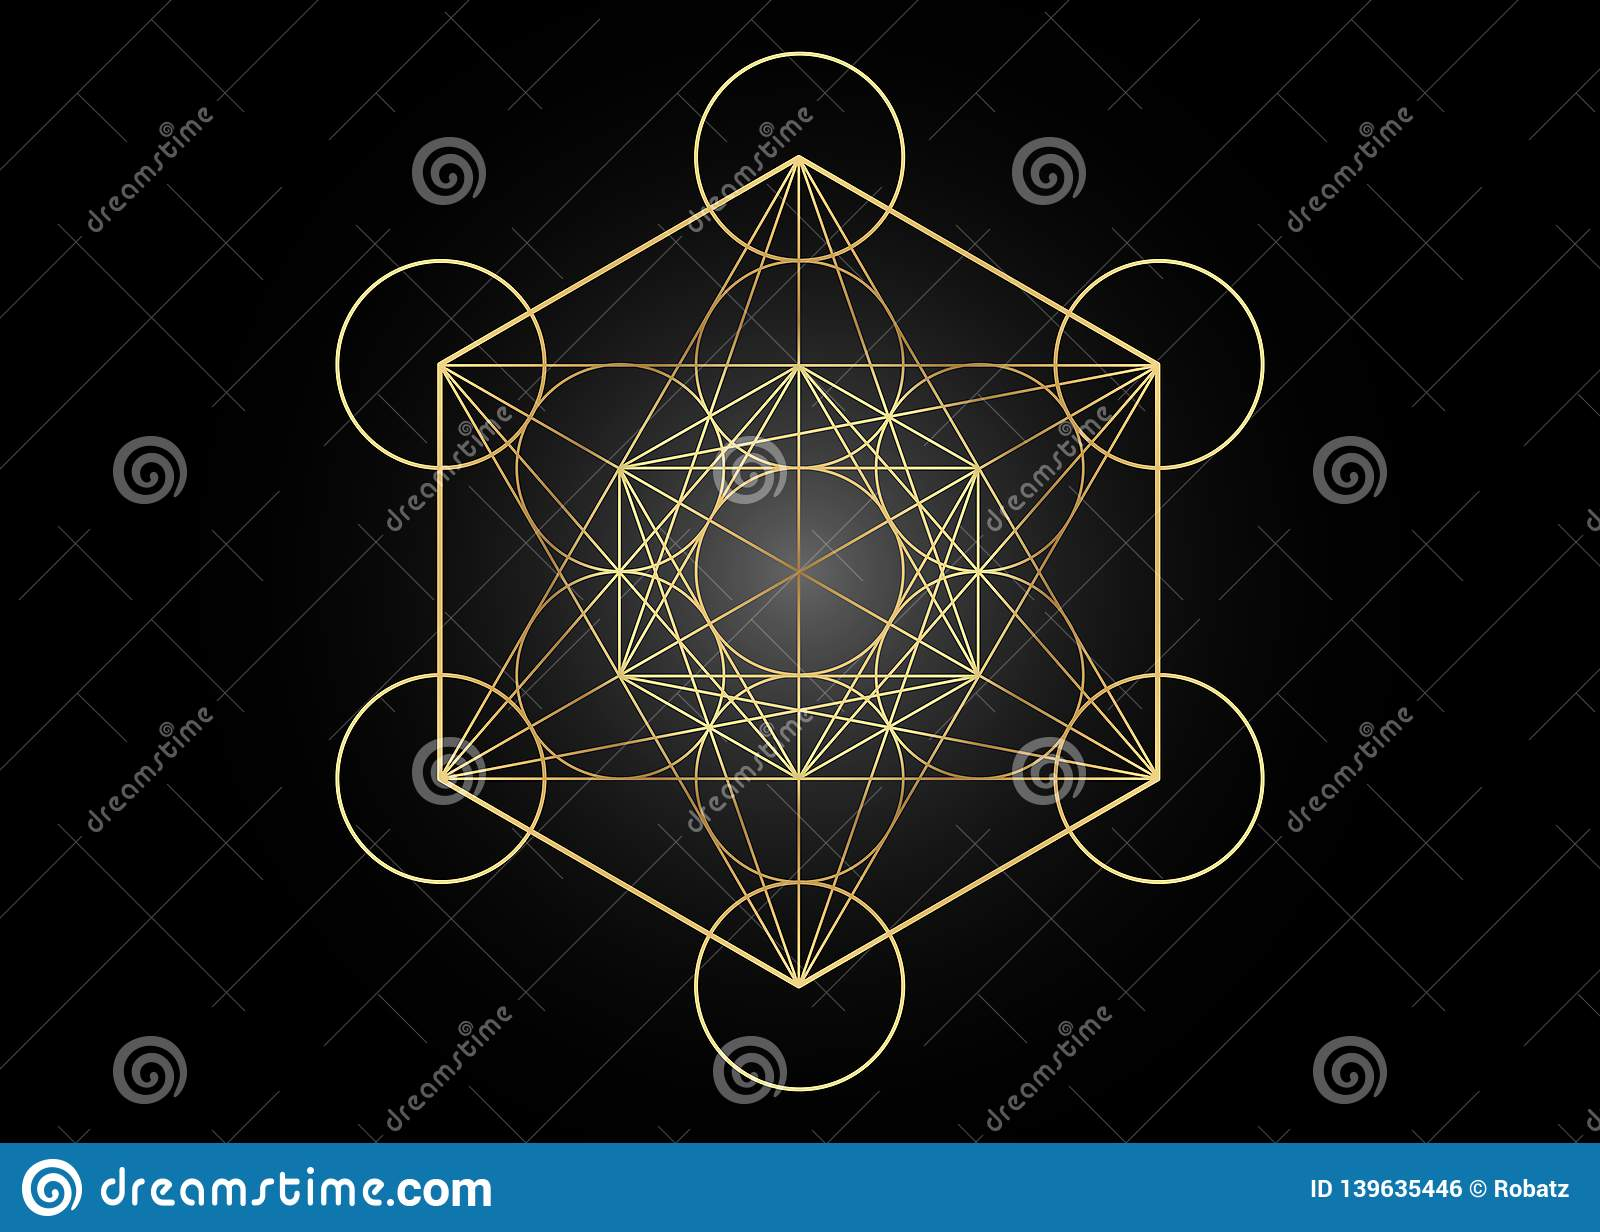 Metatrons Cube, Flower of Life. Golden Sacred geometry, graphic element Vector isolated Illustration. Mystic icon platonic solids